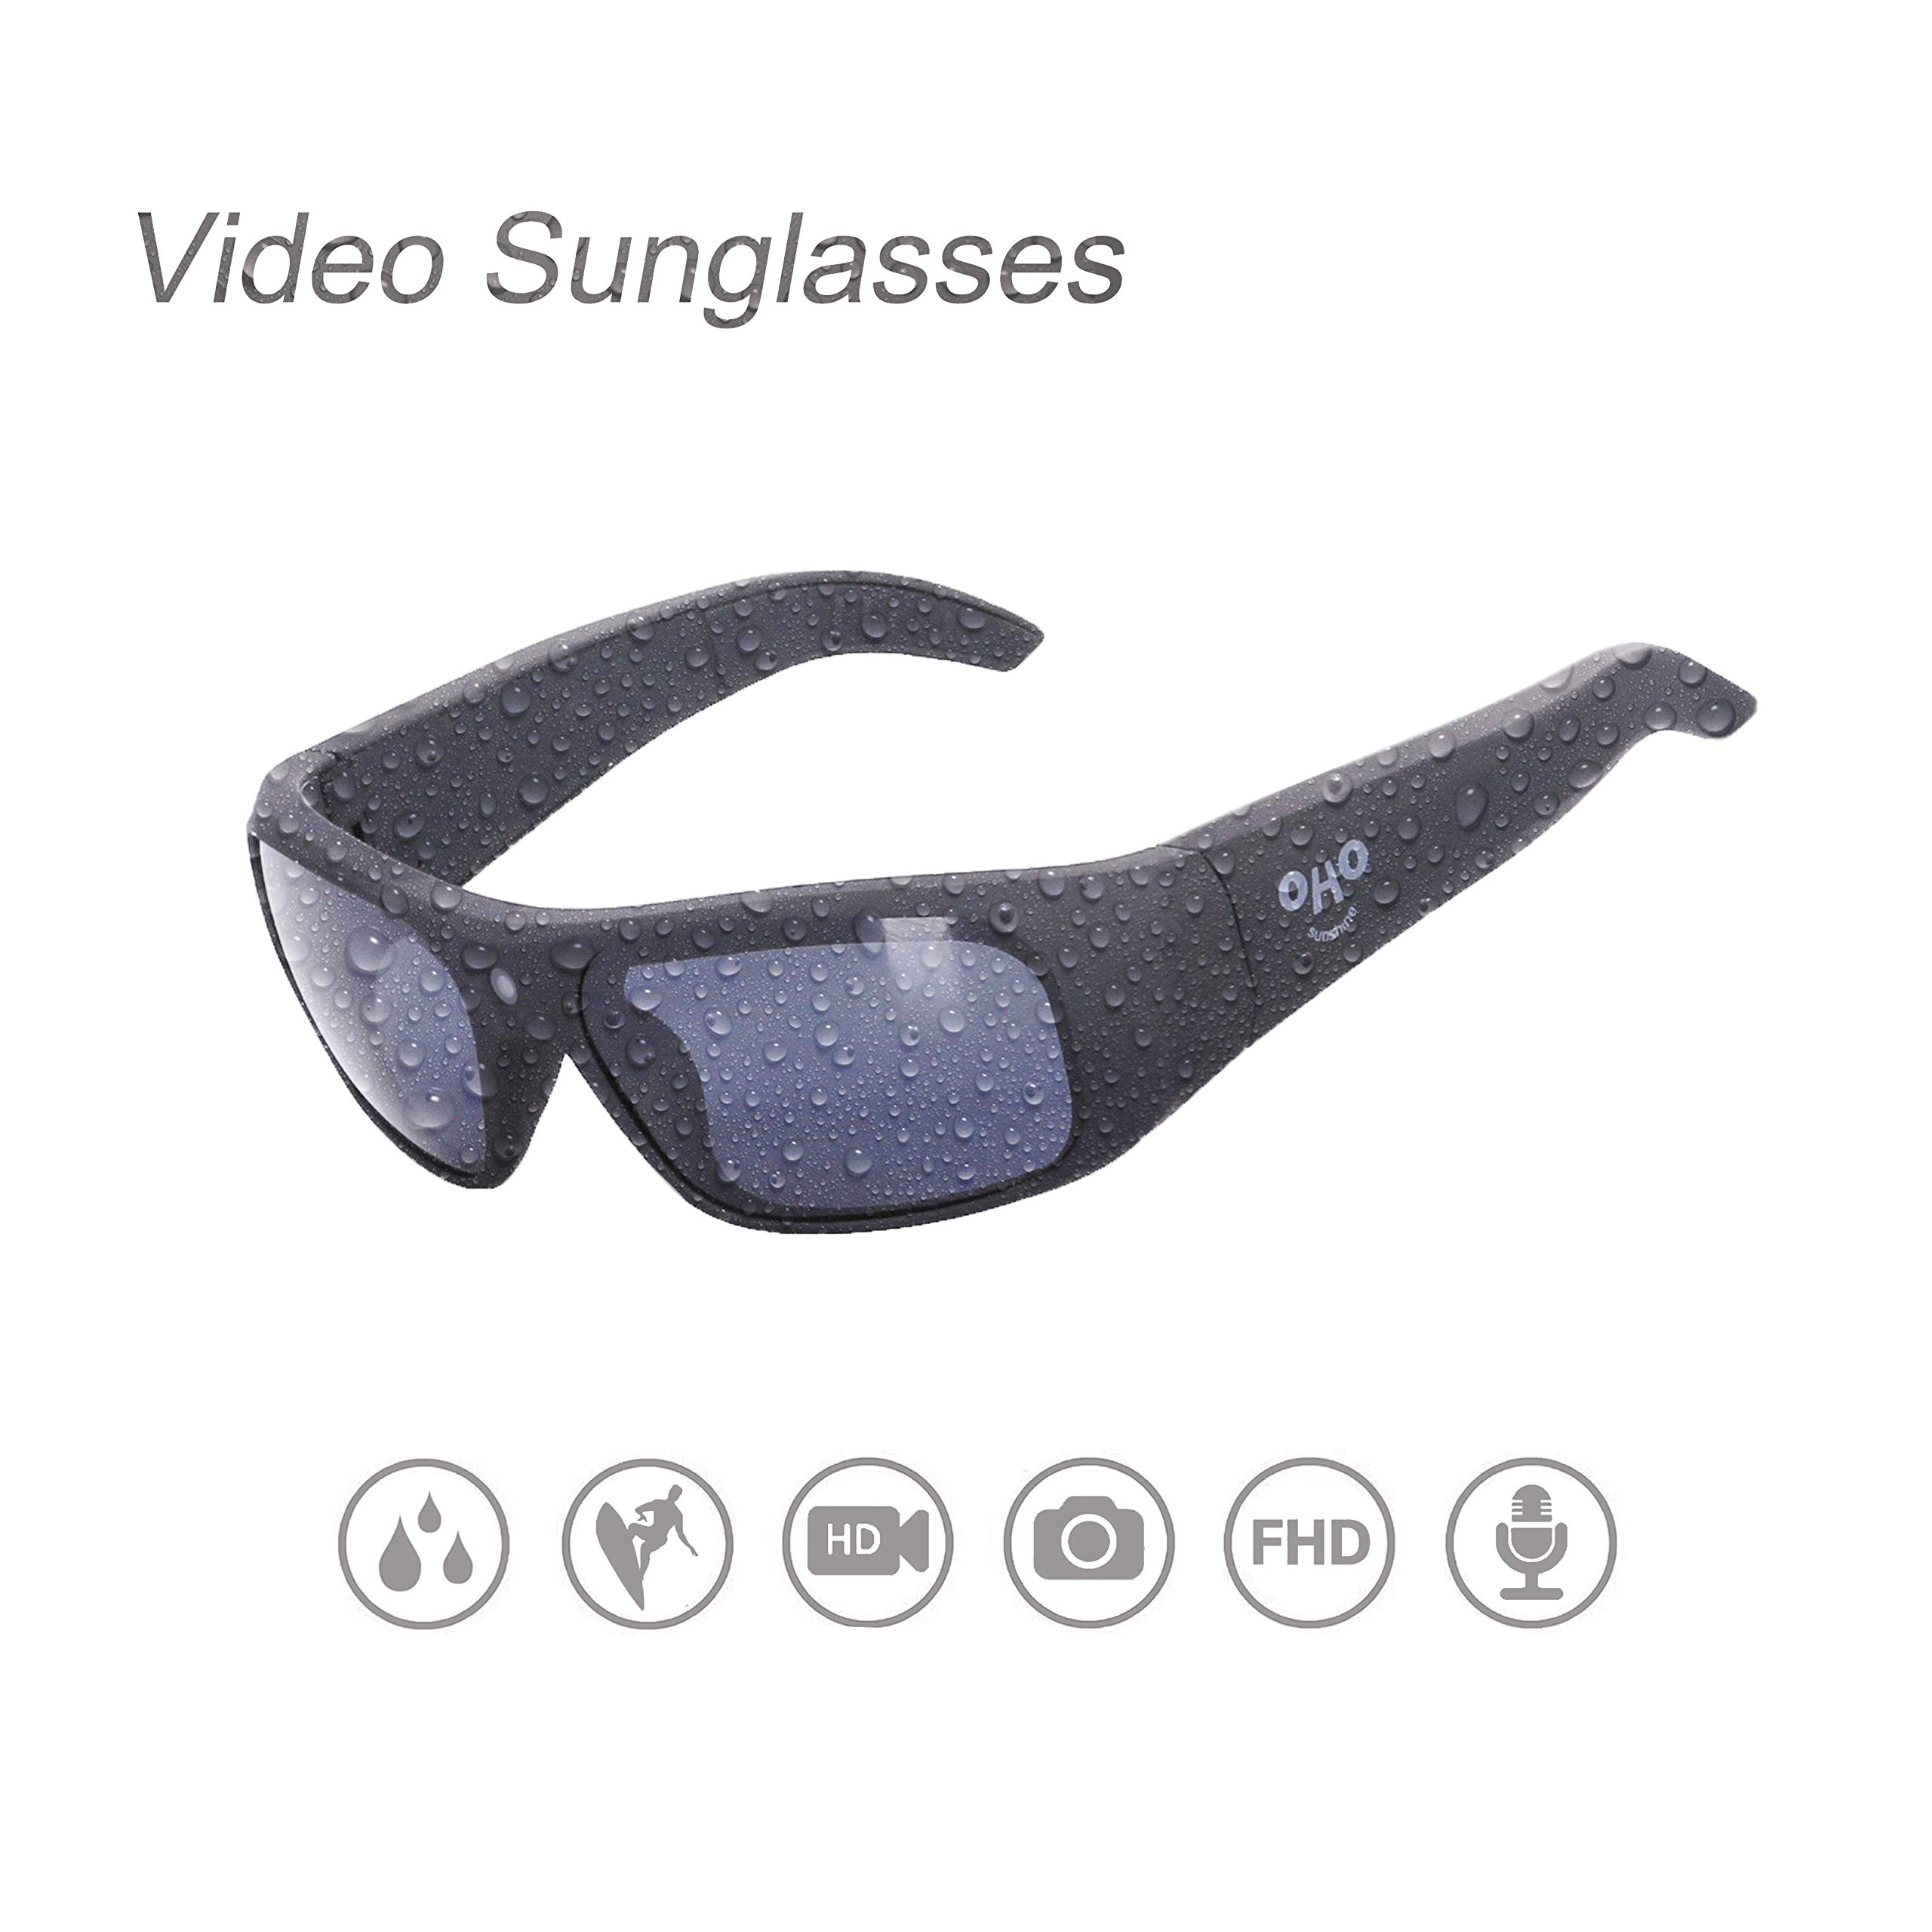 OhO sunshine Waterproof Video Sunglasses,32G Ultra 1080P HD Video Recording Camera Polarized UV400 Protection Safety Lenses,Unisex Design